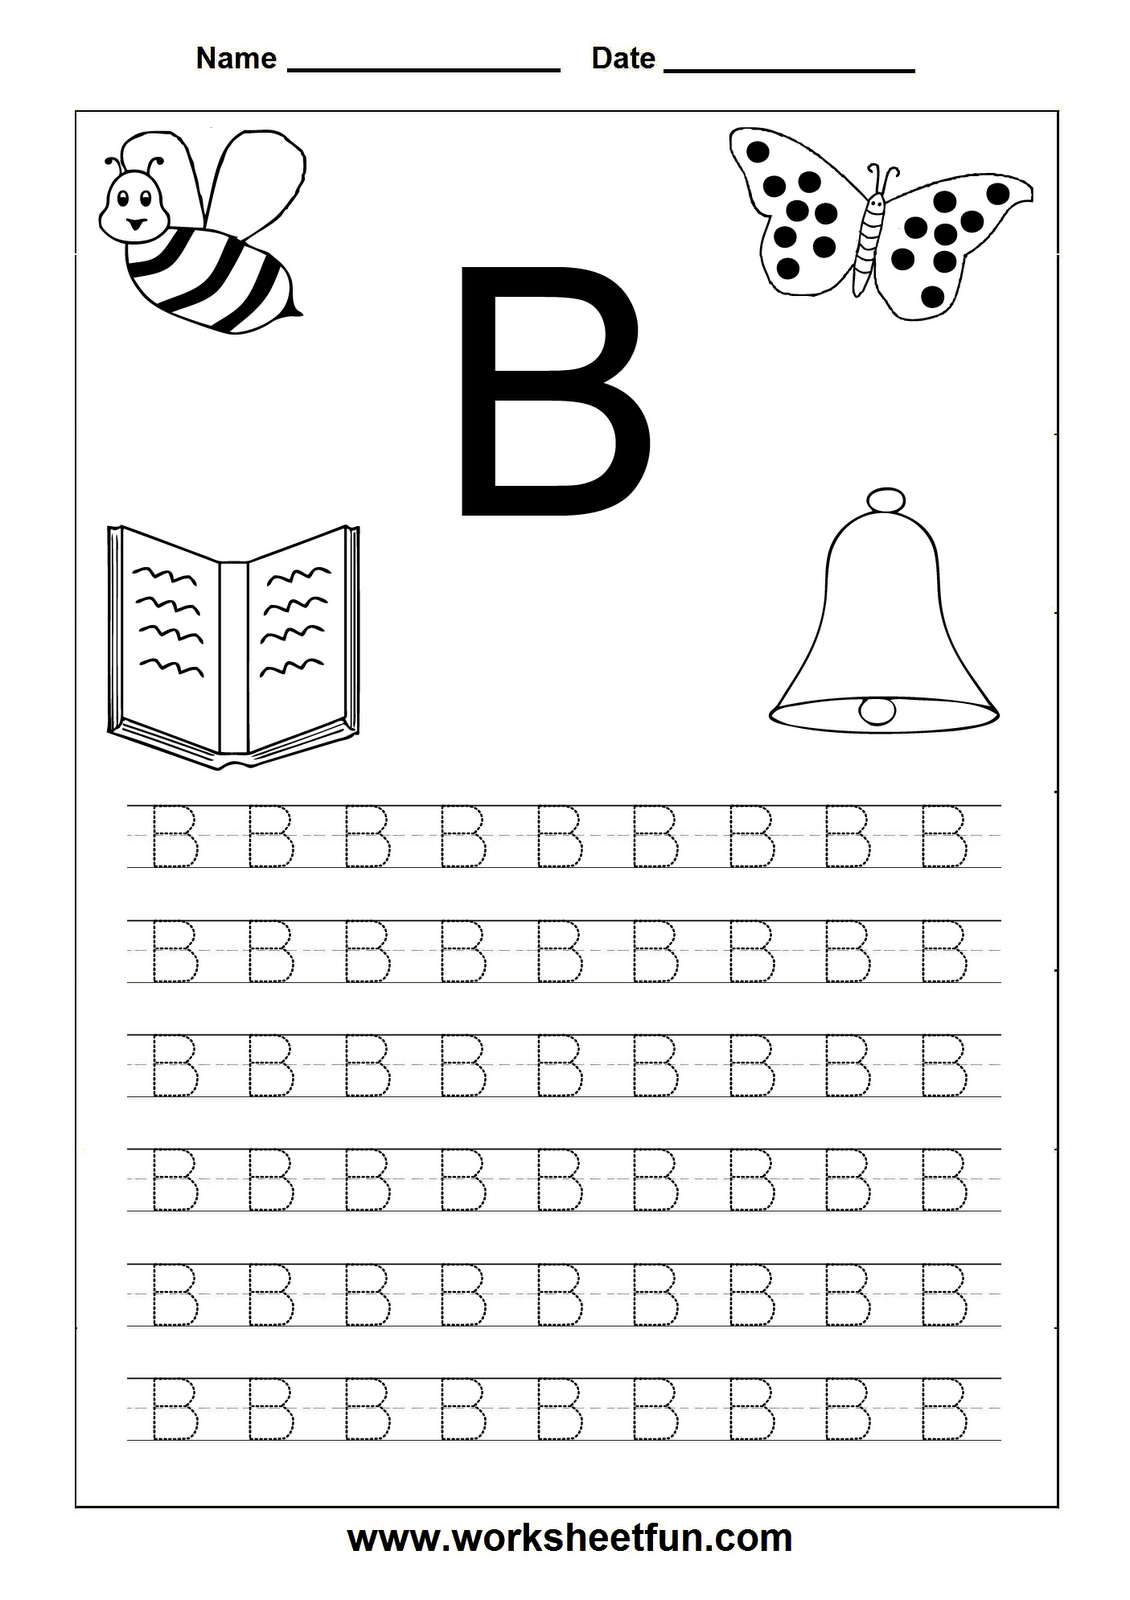 Worksheets Alphabet Worksheet For Kg Free letter tracing worksheets for kindergarten capital and small free printables letters alphabet tracing